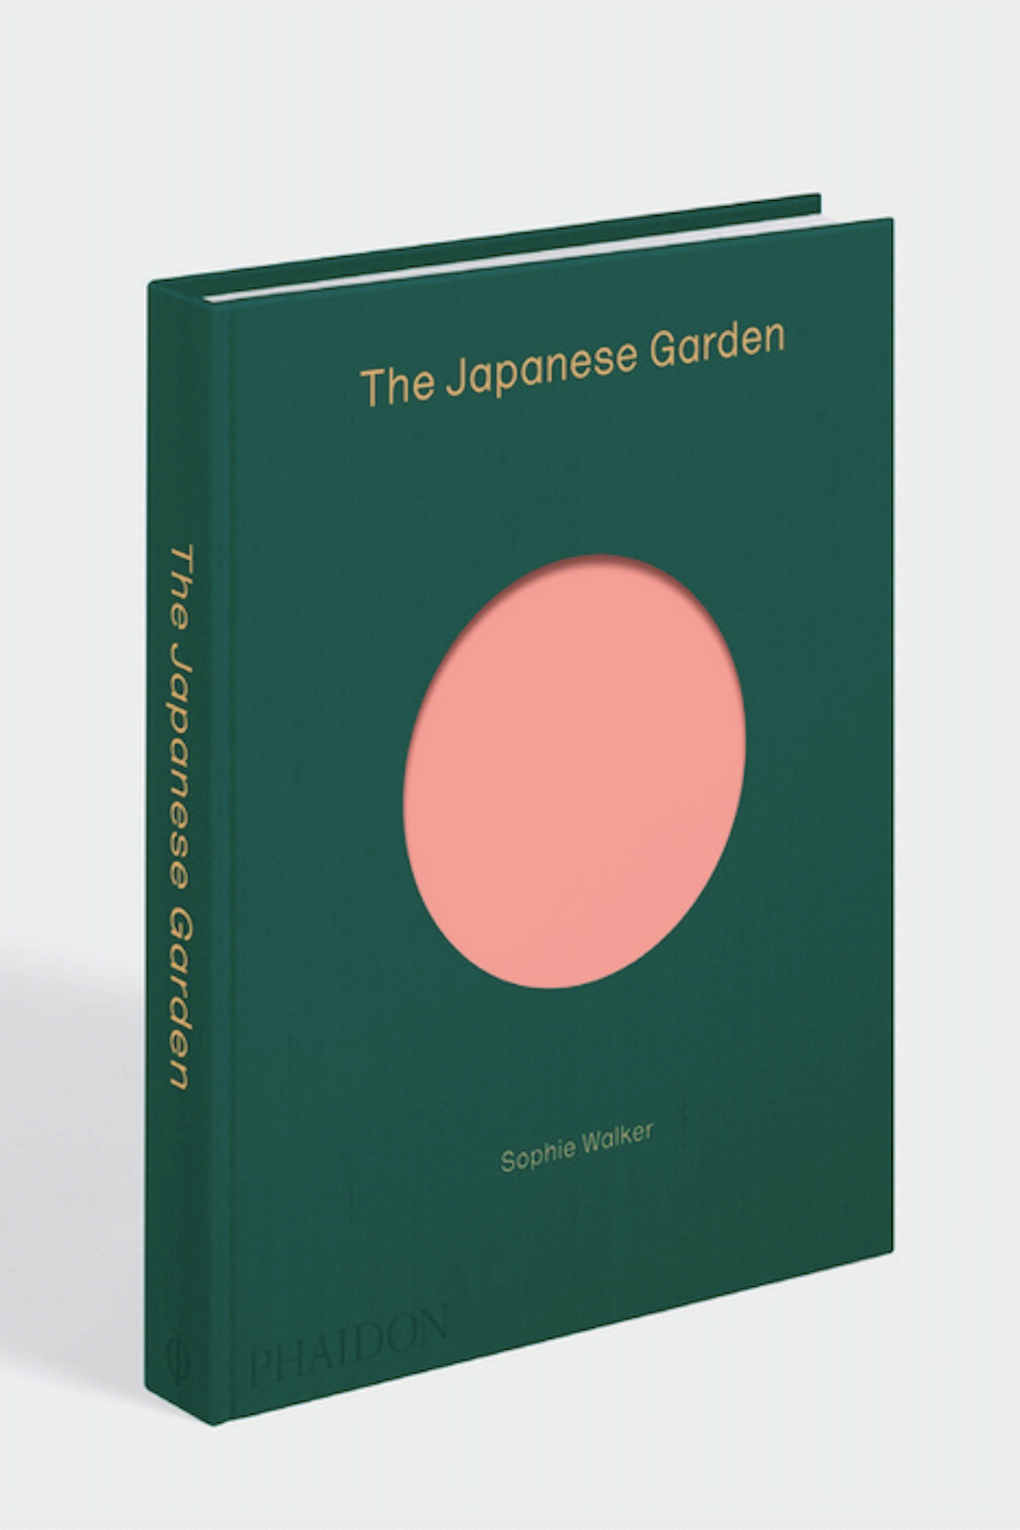 The Japanese Garden-Sophie Walker-Phaidon-Japanese garden book-Idun-St. Paul